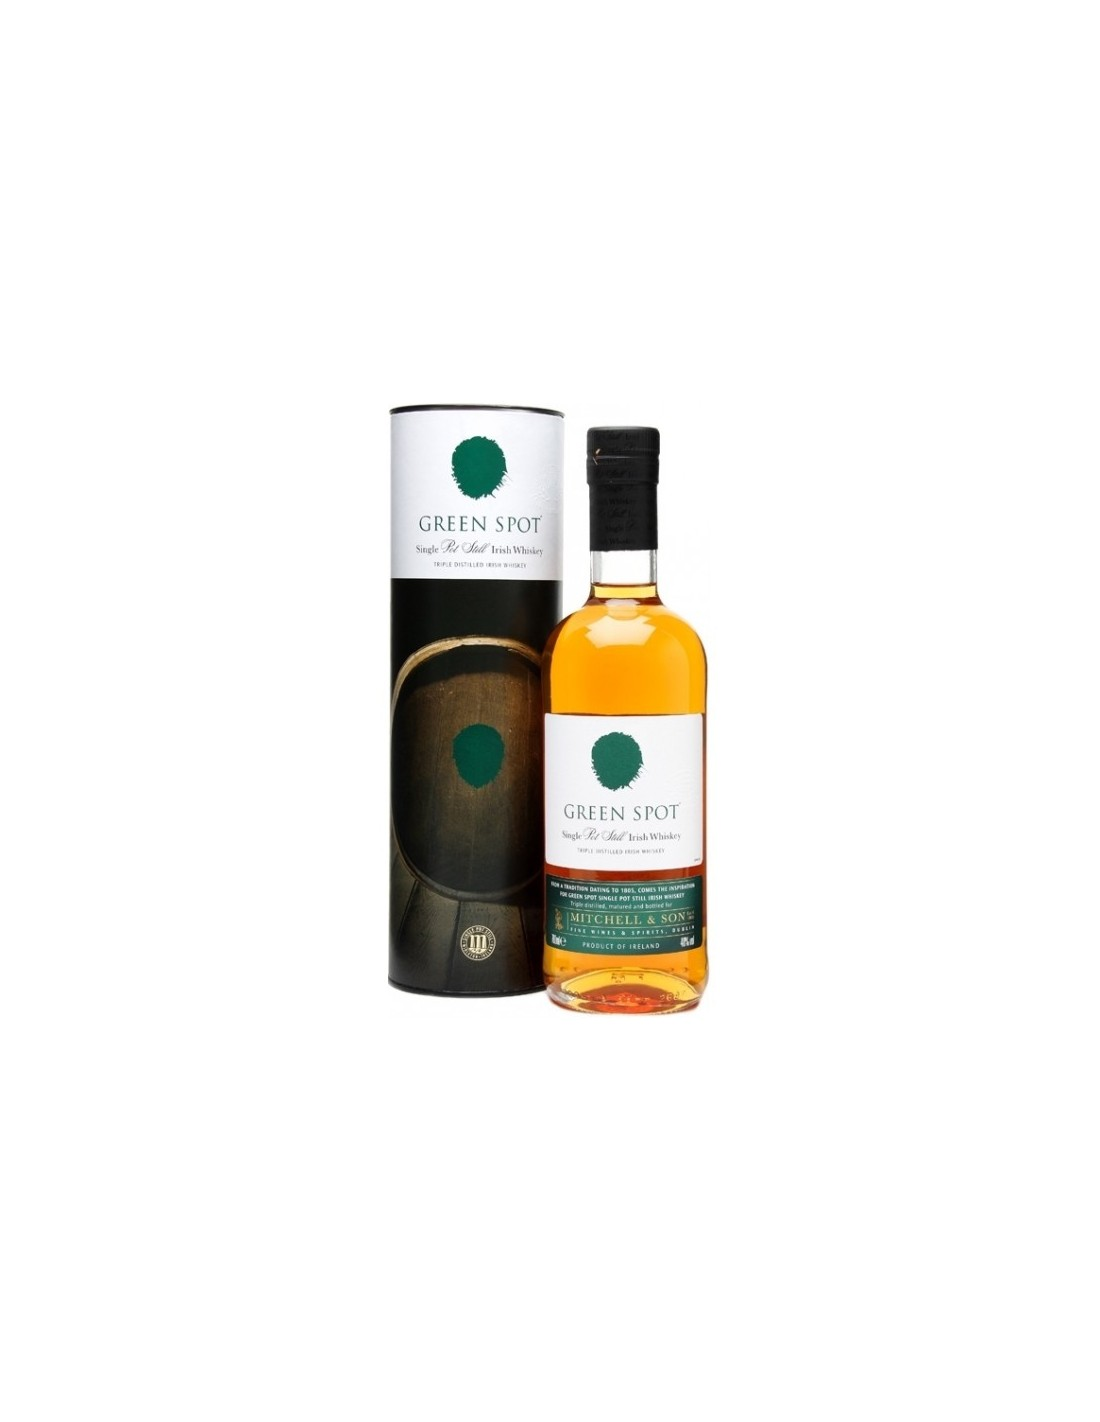 Whisky Green Spot Single Malt Pot Still, 40% alc., 0.7L, Irlanda